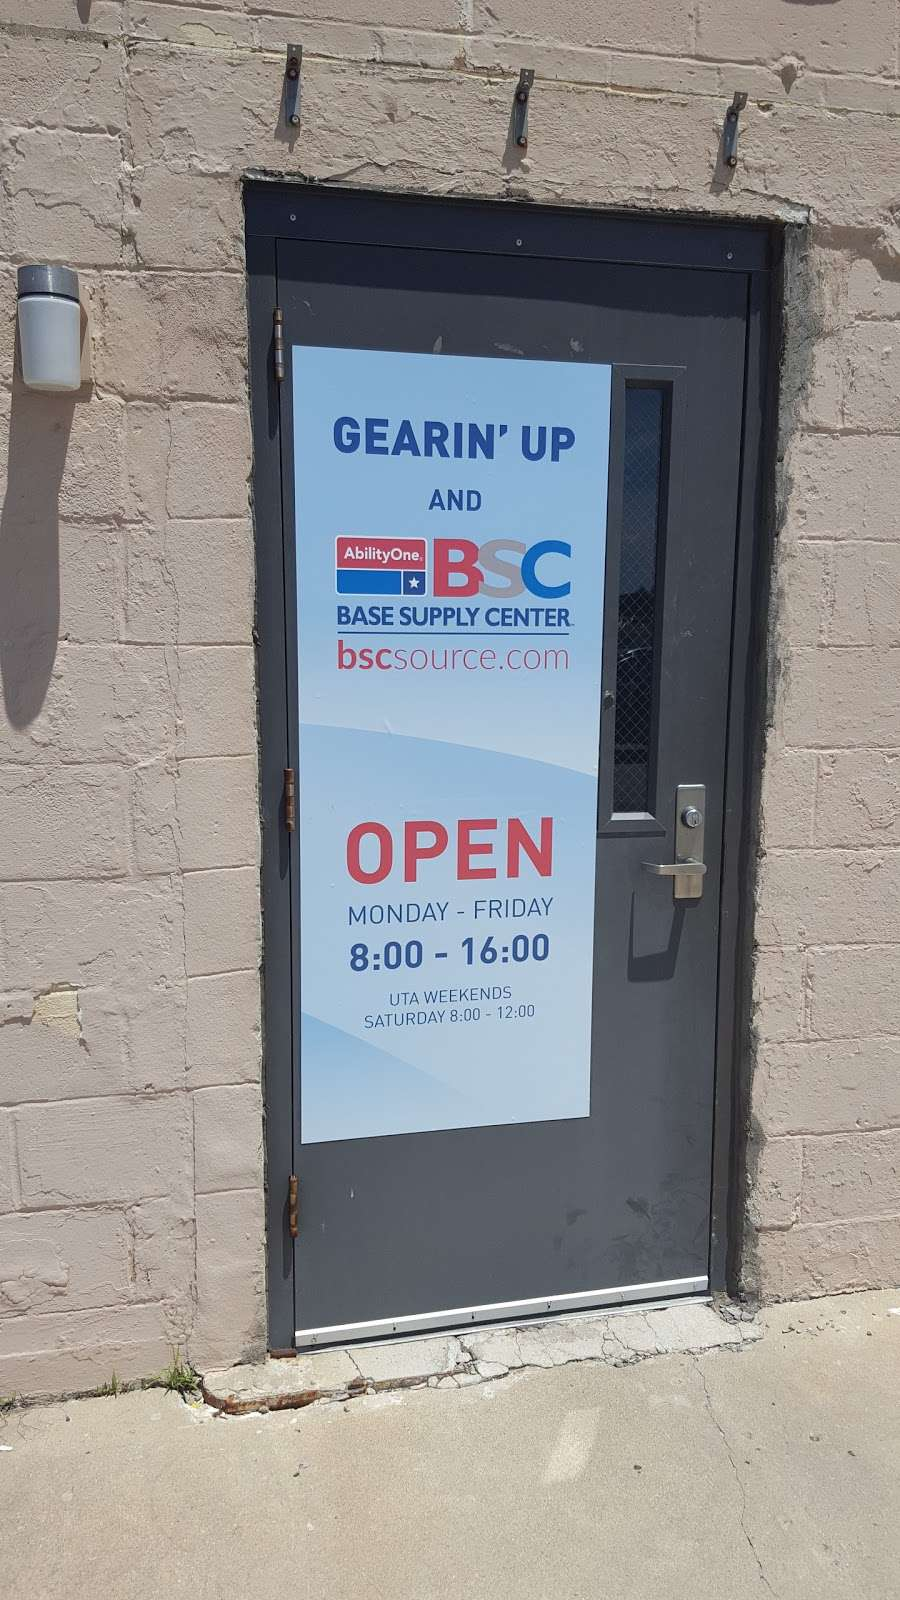 Gearin Up - clothing store  | Photo 10 of 10 | Address: McGuire AFB, NJ 08641, USA | Phone: (609) 723-4700